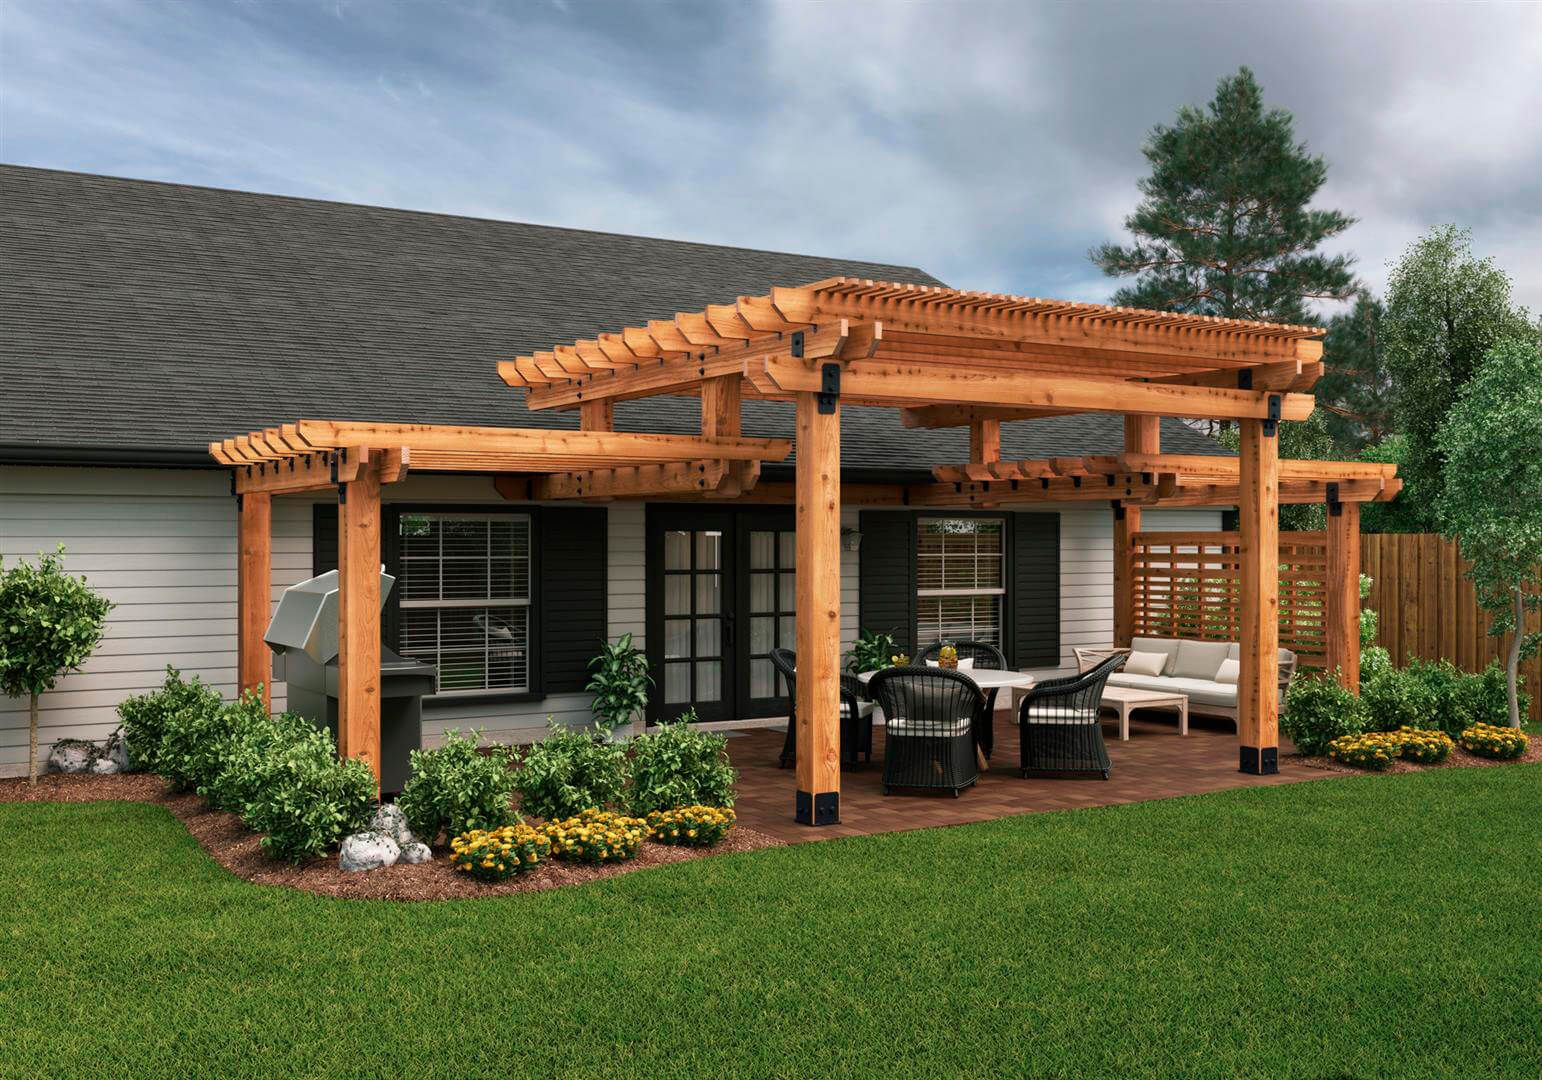 Project Plans Curved Rafter Appeal Pergolas With Curves Outdoor Pergola Backyard Patio Pergola Patio